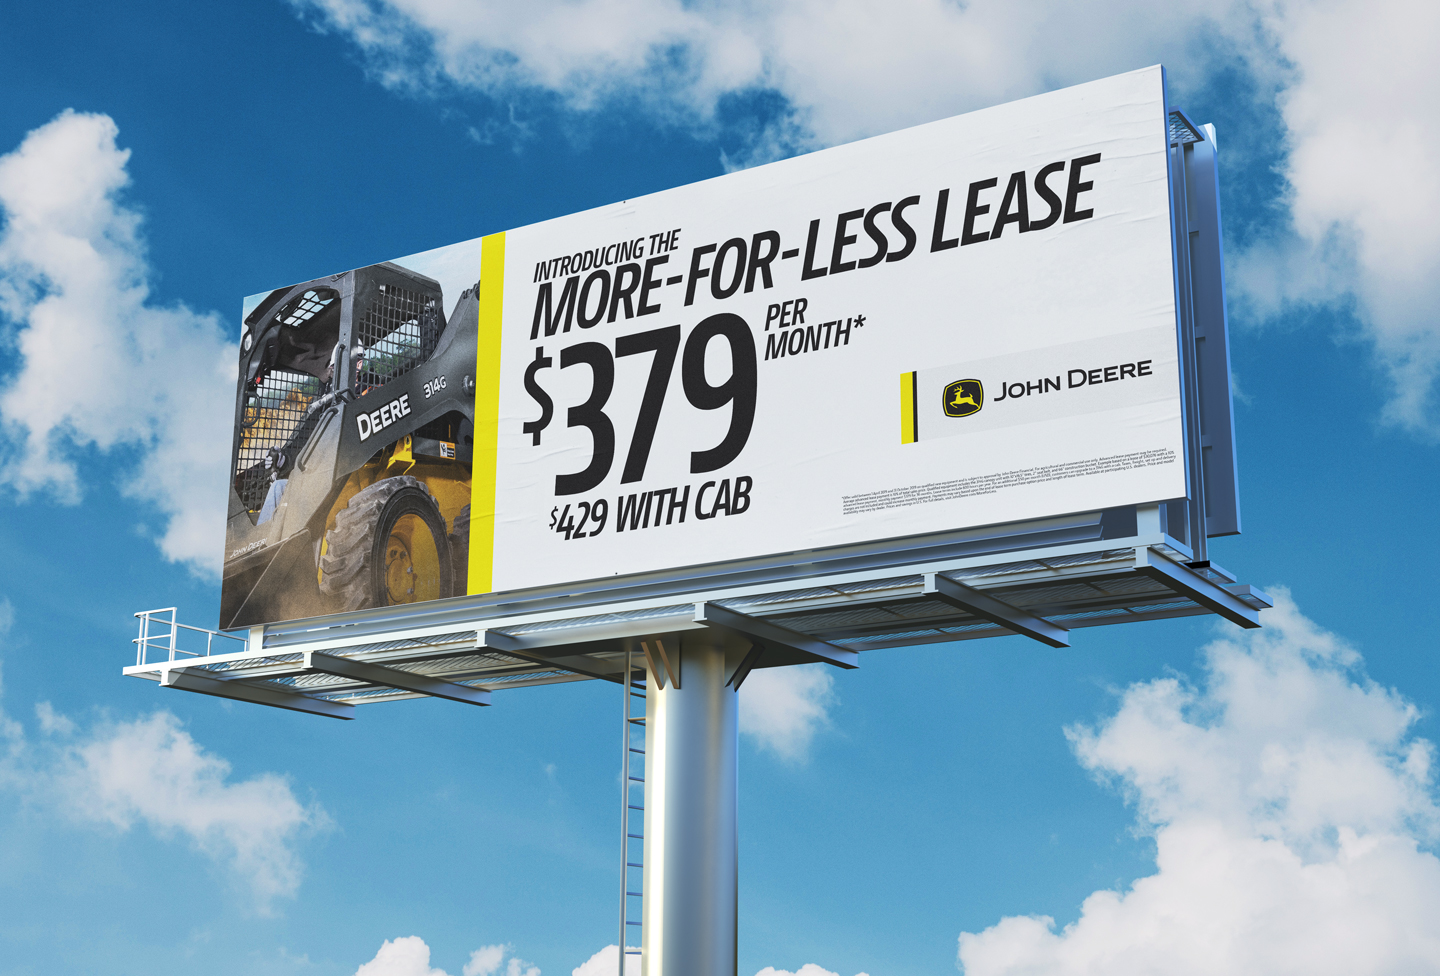 billboard showing more for less lease